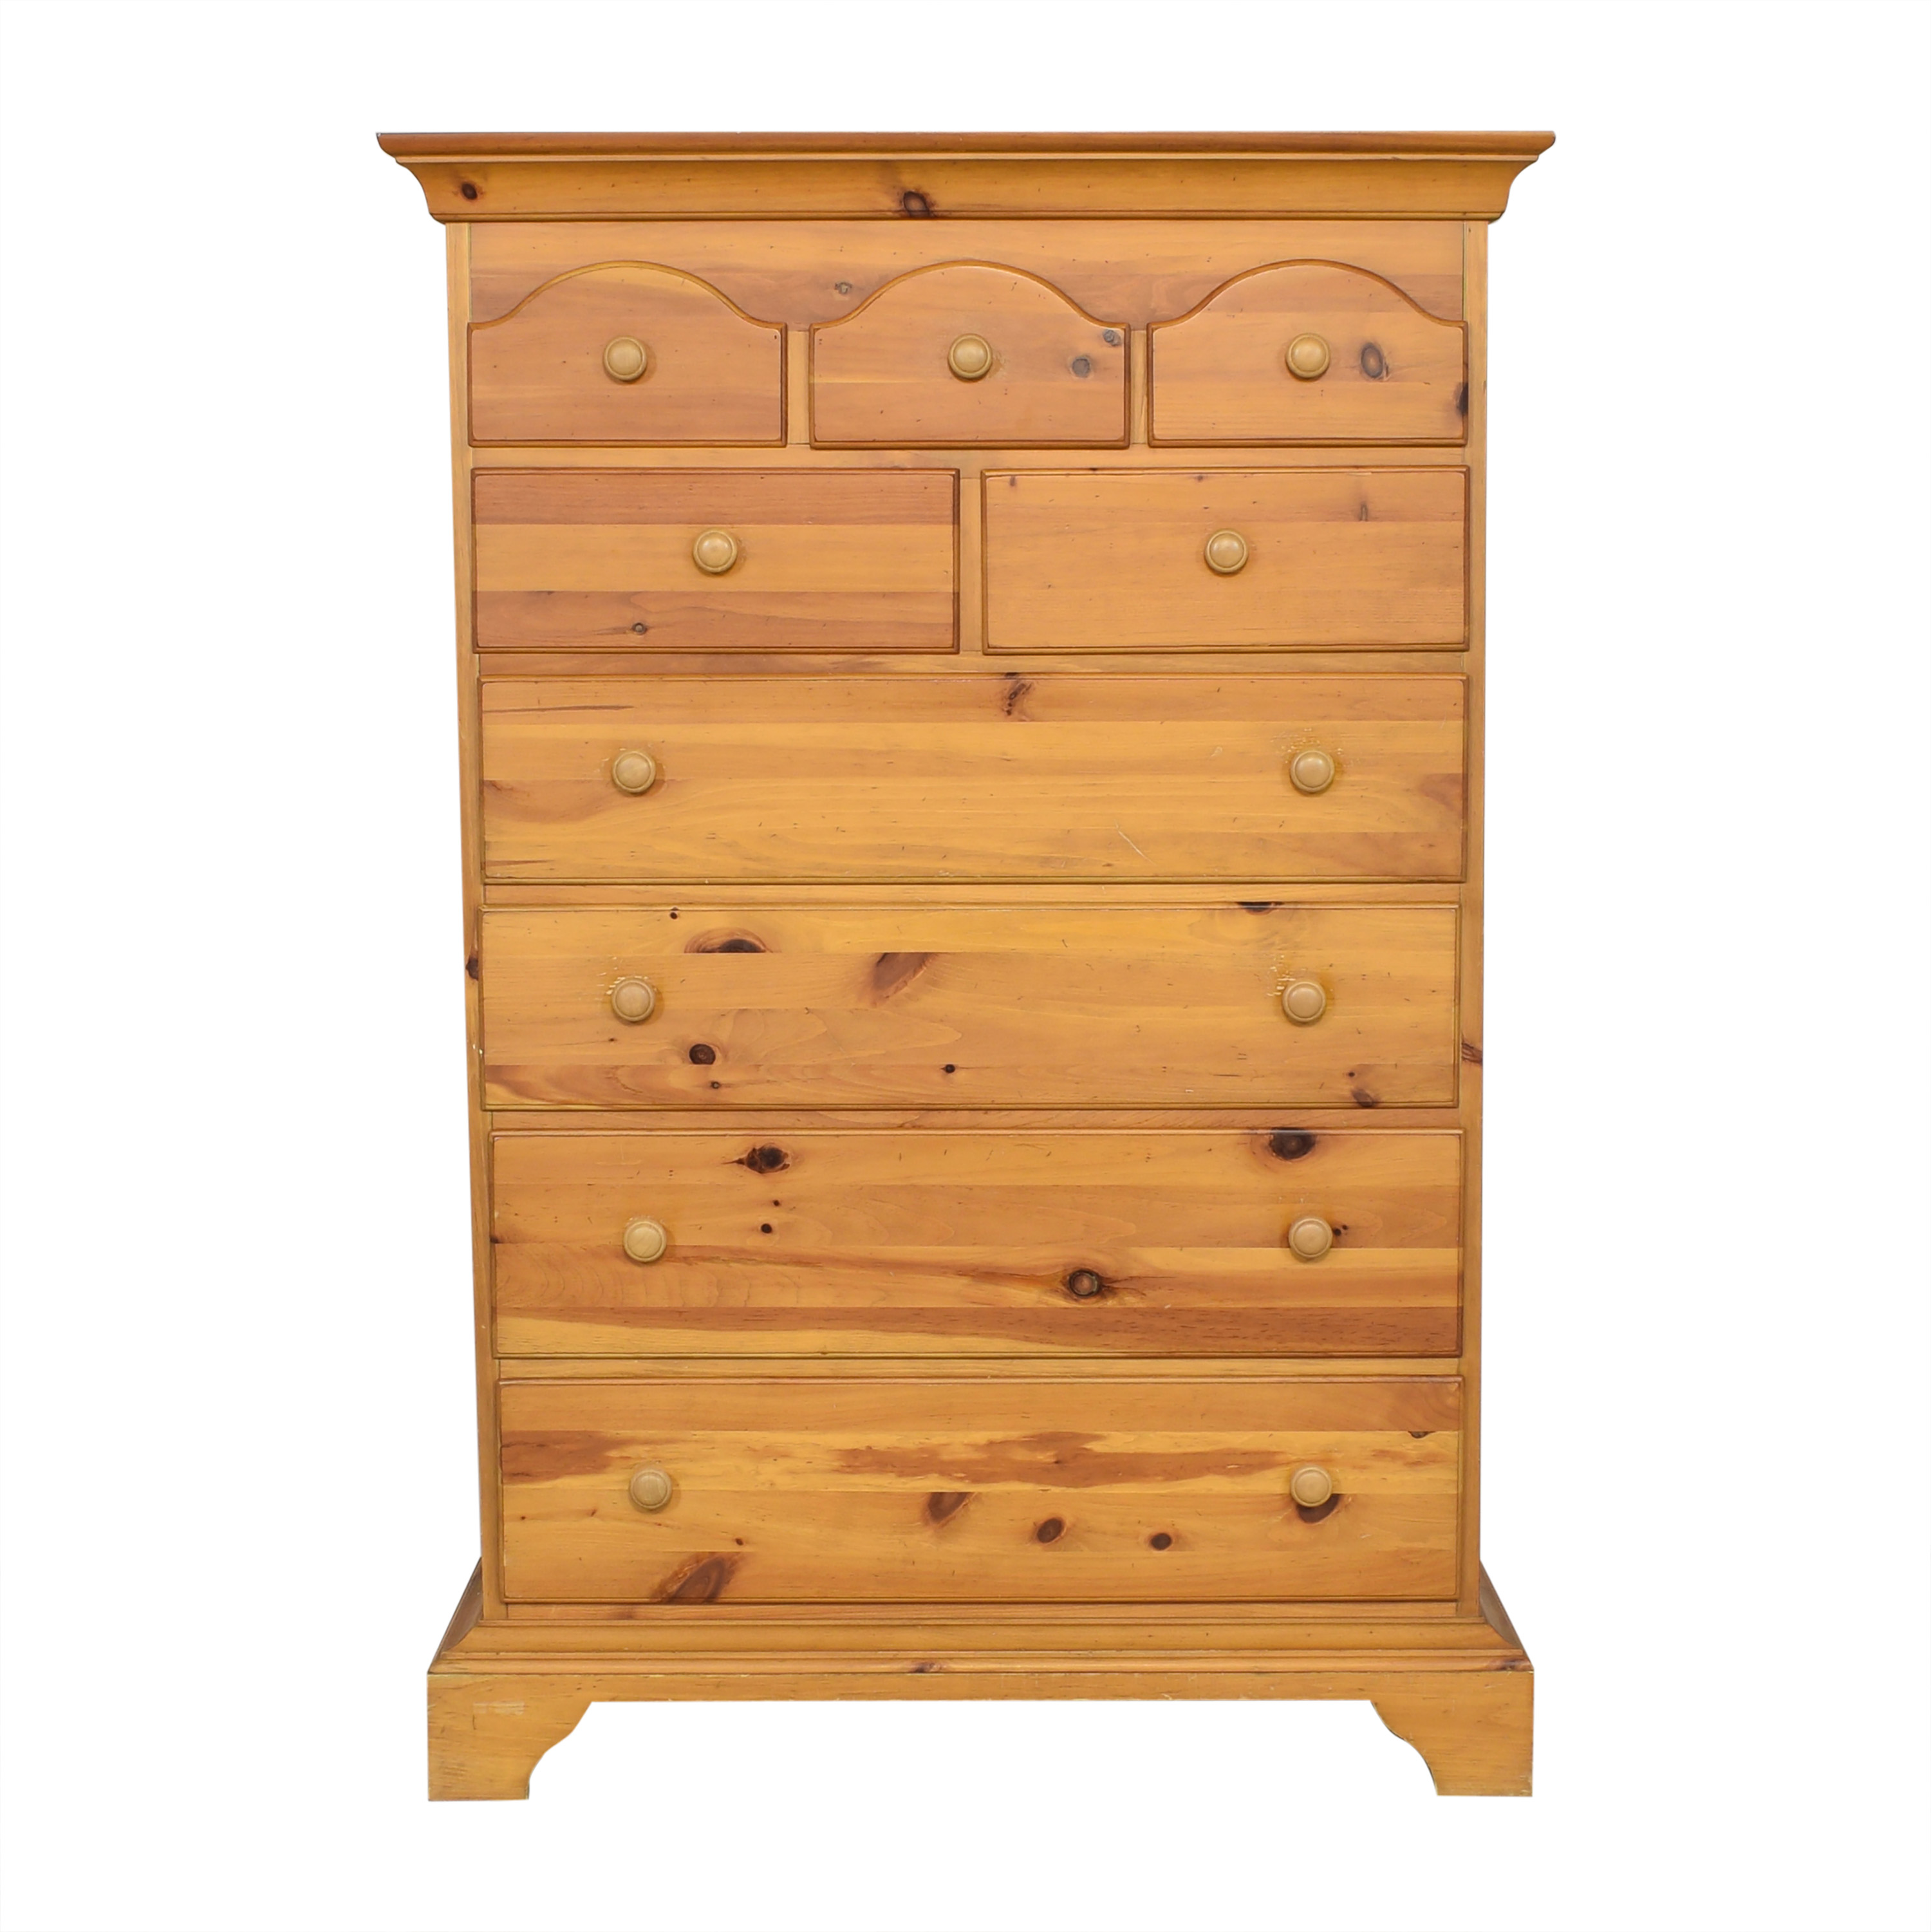 Thomasville Thomasville Country Inns and Back Roads Collection Dresser Storage